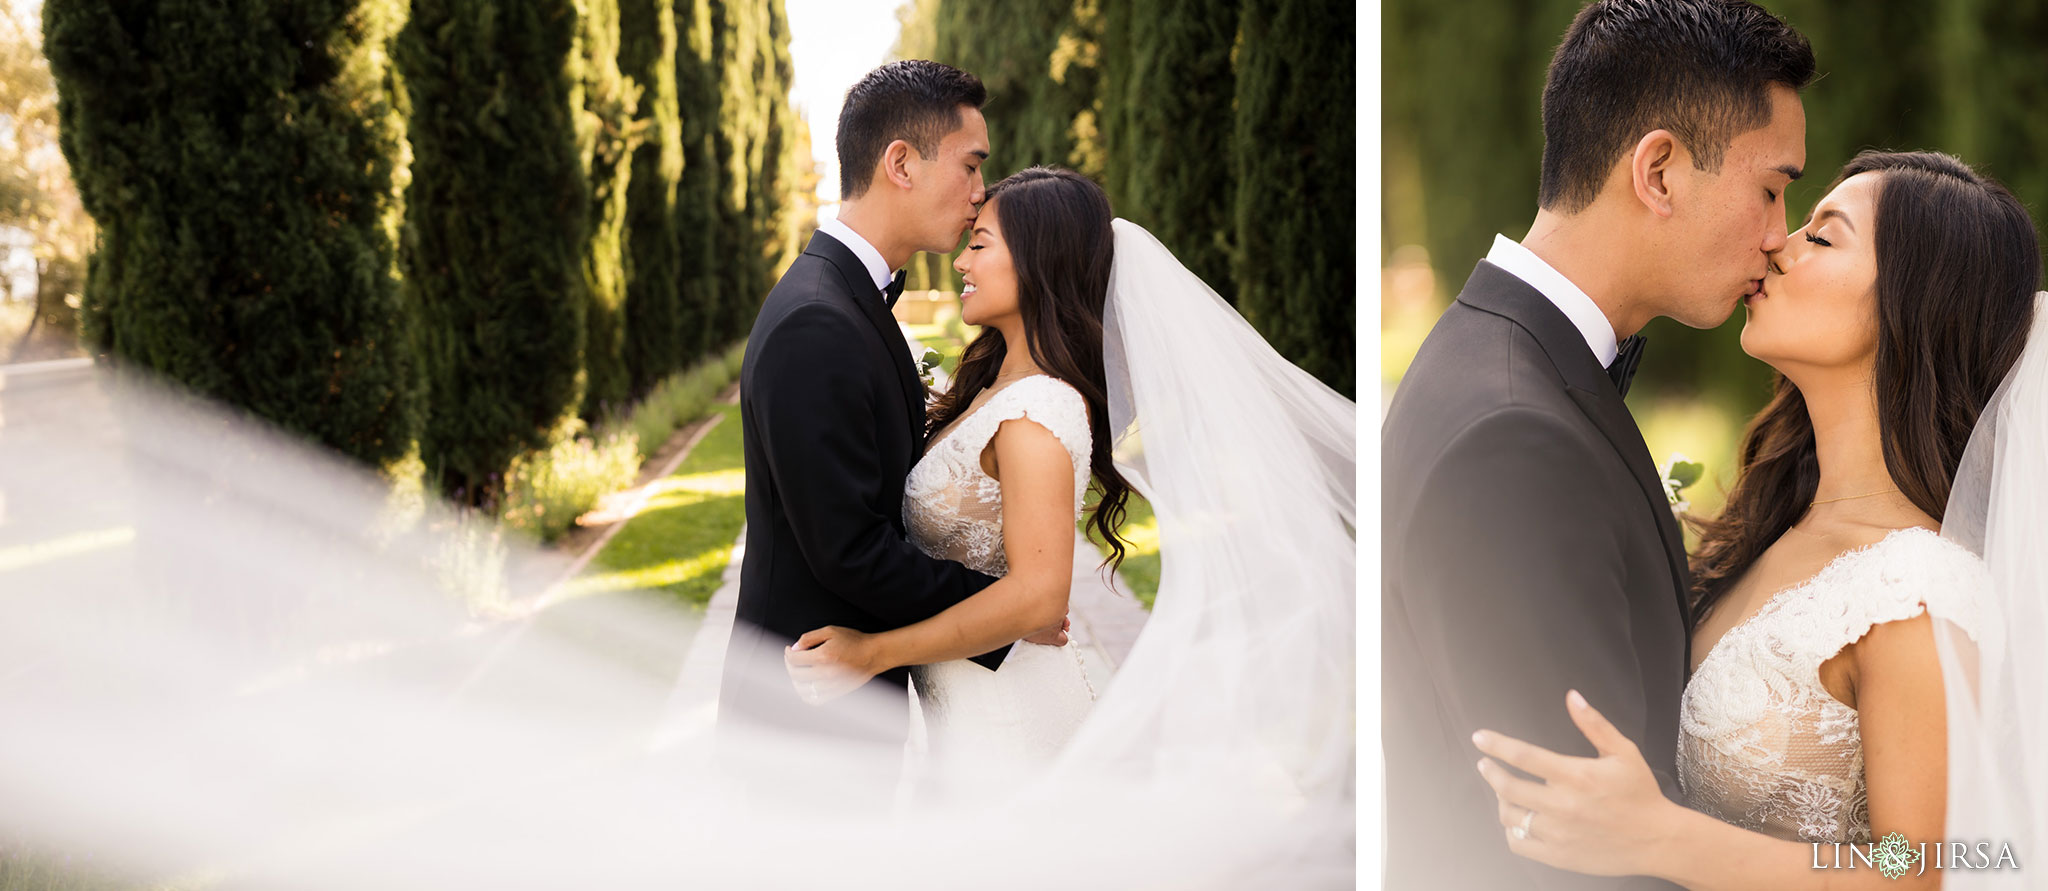 23 greystone mansion los angeles wedding photography